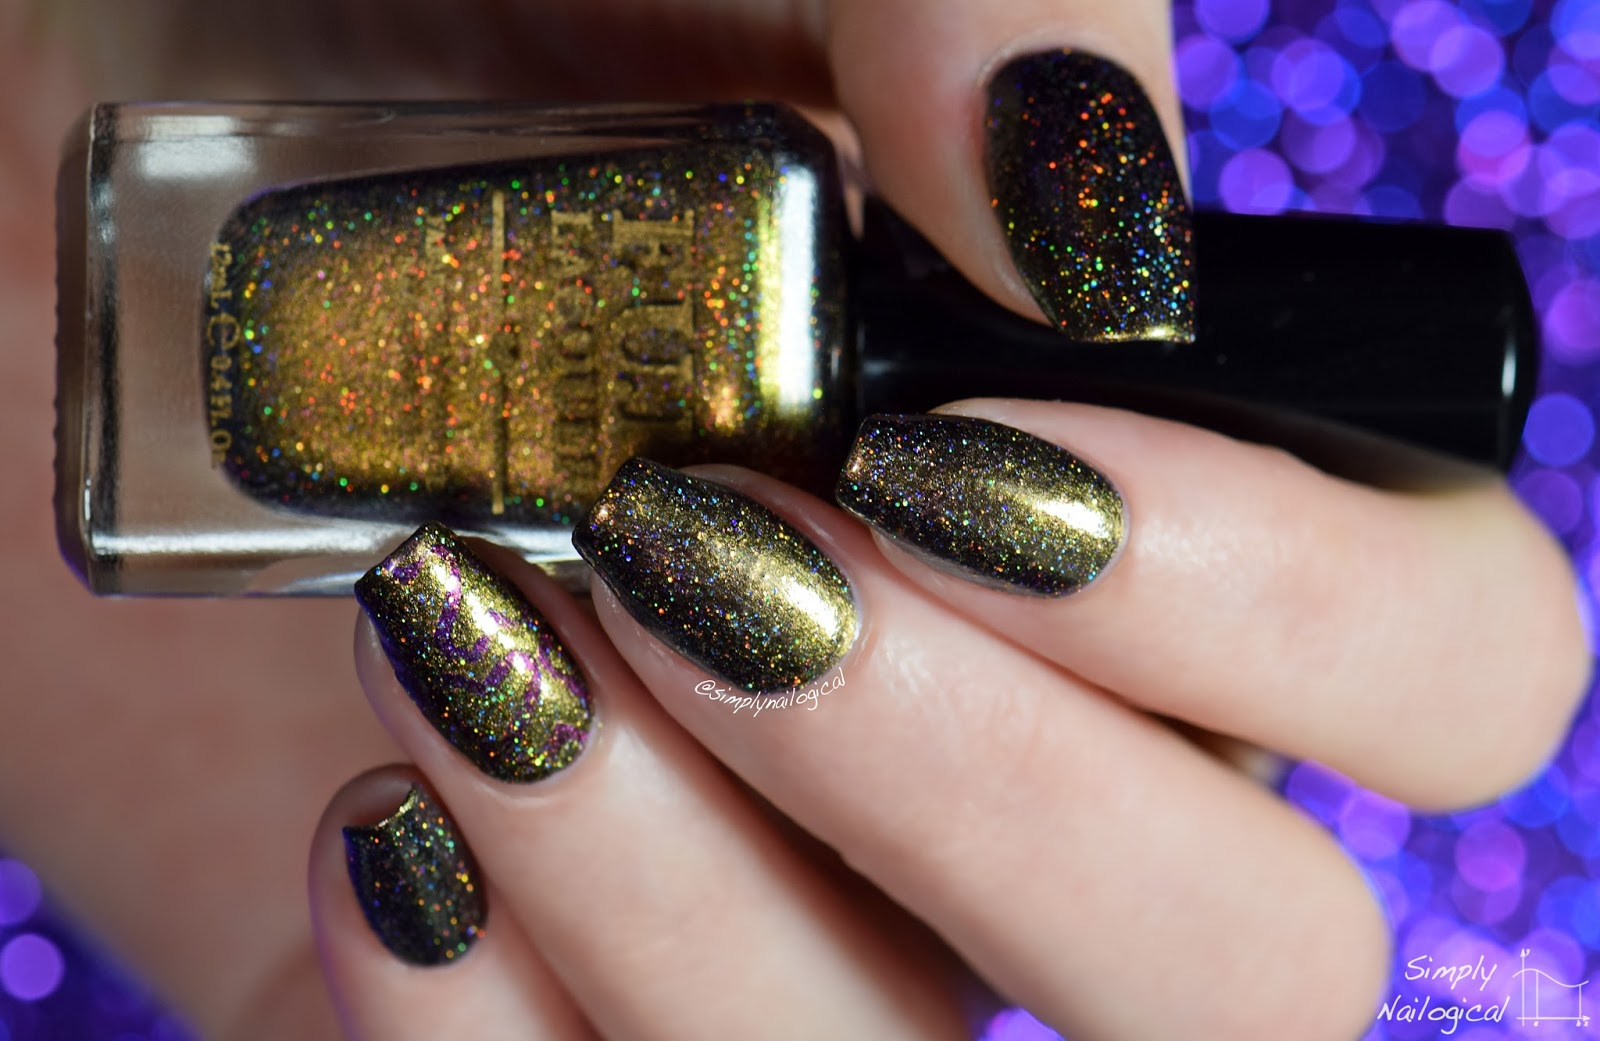 FUN Lacquer 2015 Love collection - Philia (H)